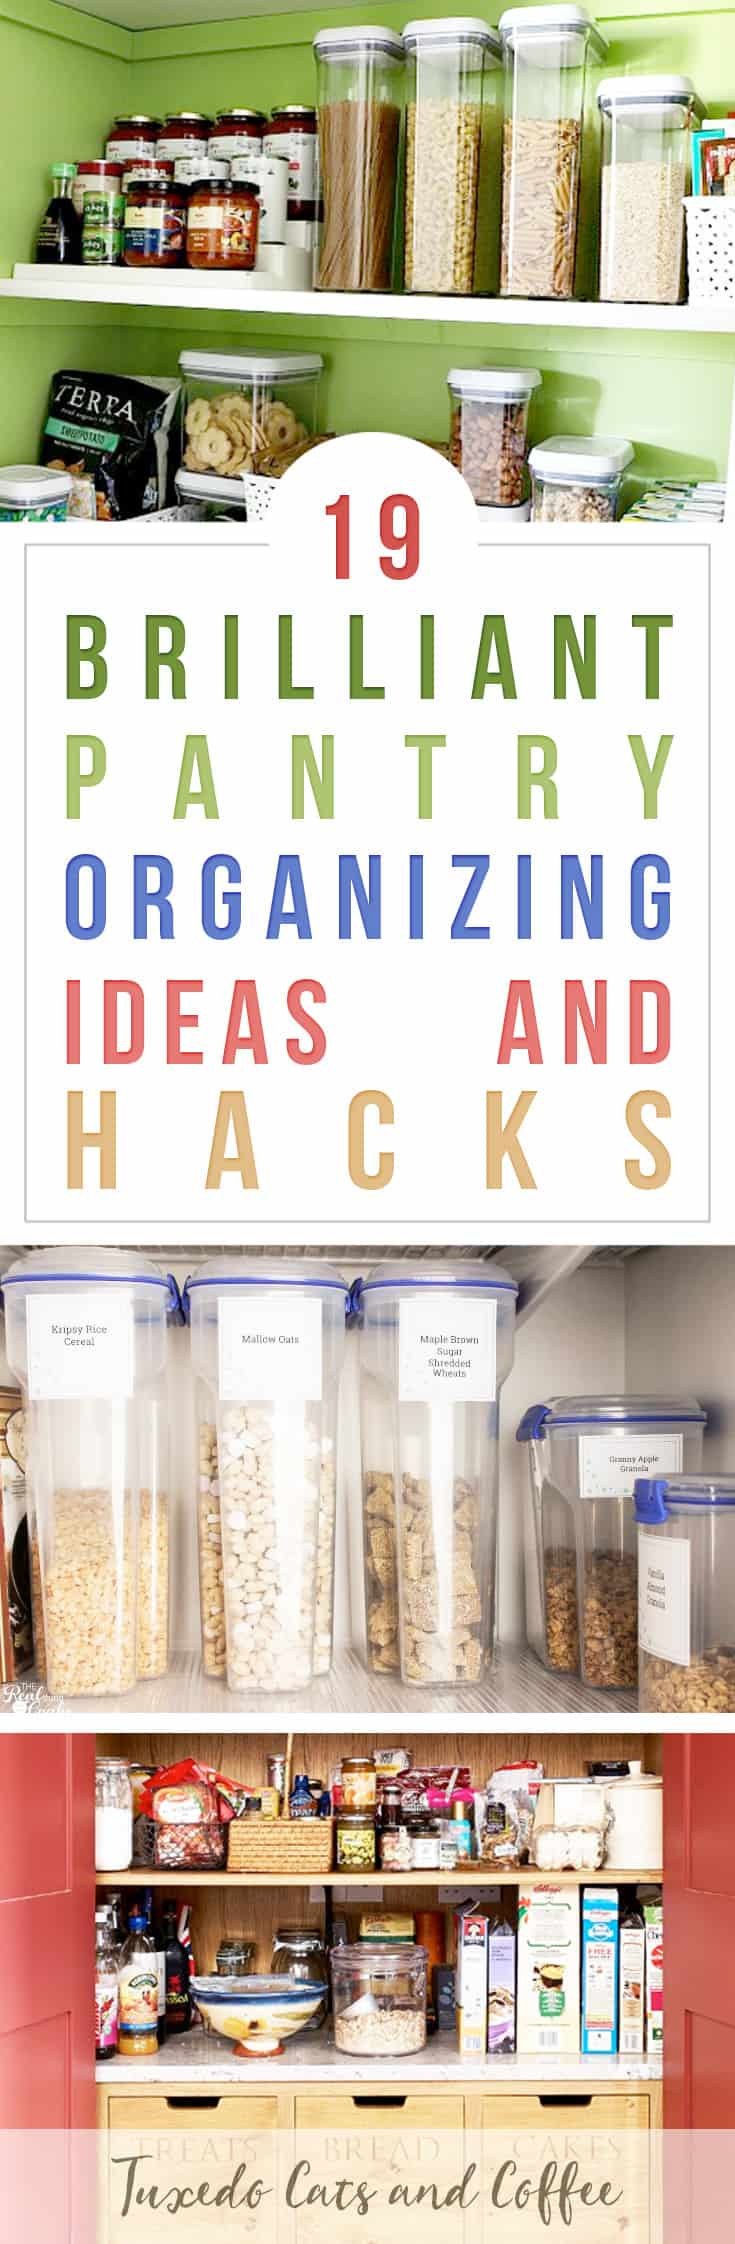 Got a messy pantry or food scattered all over the counters and random places in your kitchen? Get all your food together neatly with these 19 brilliant pantry organizing ideas and hacks.